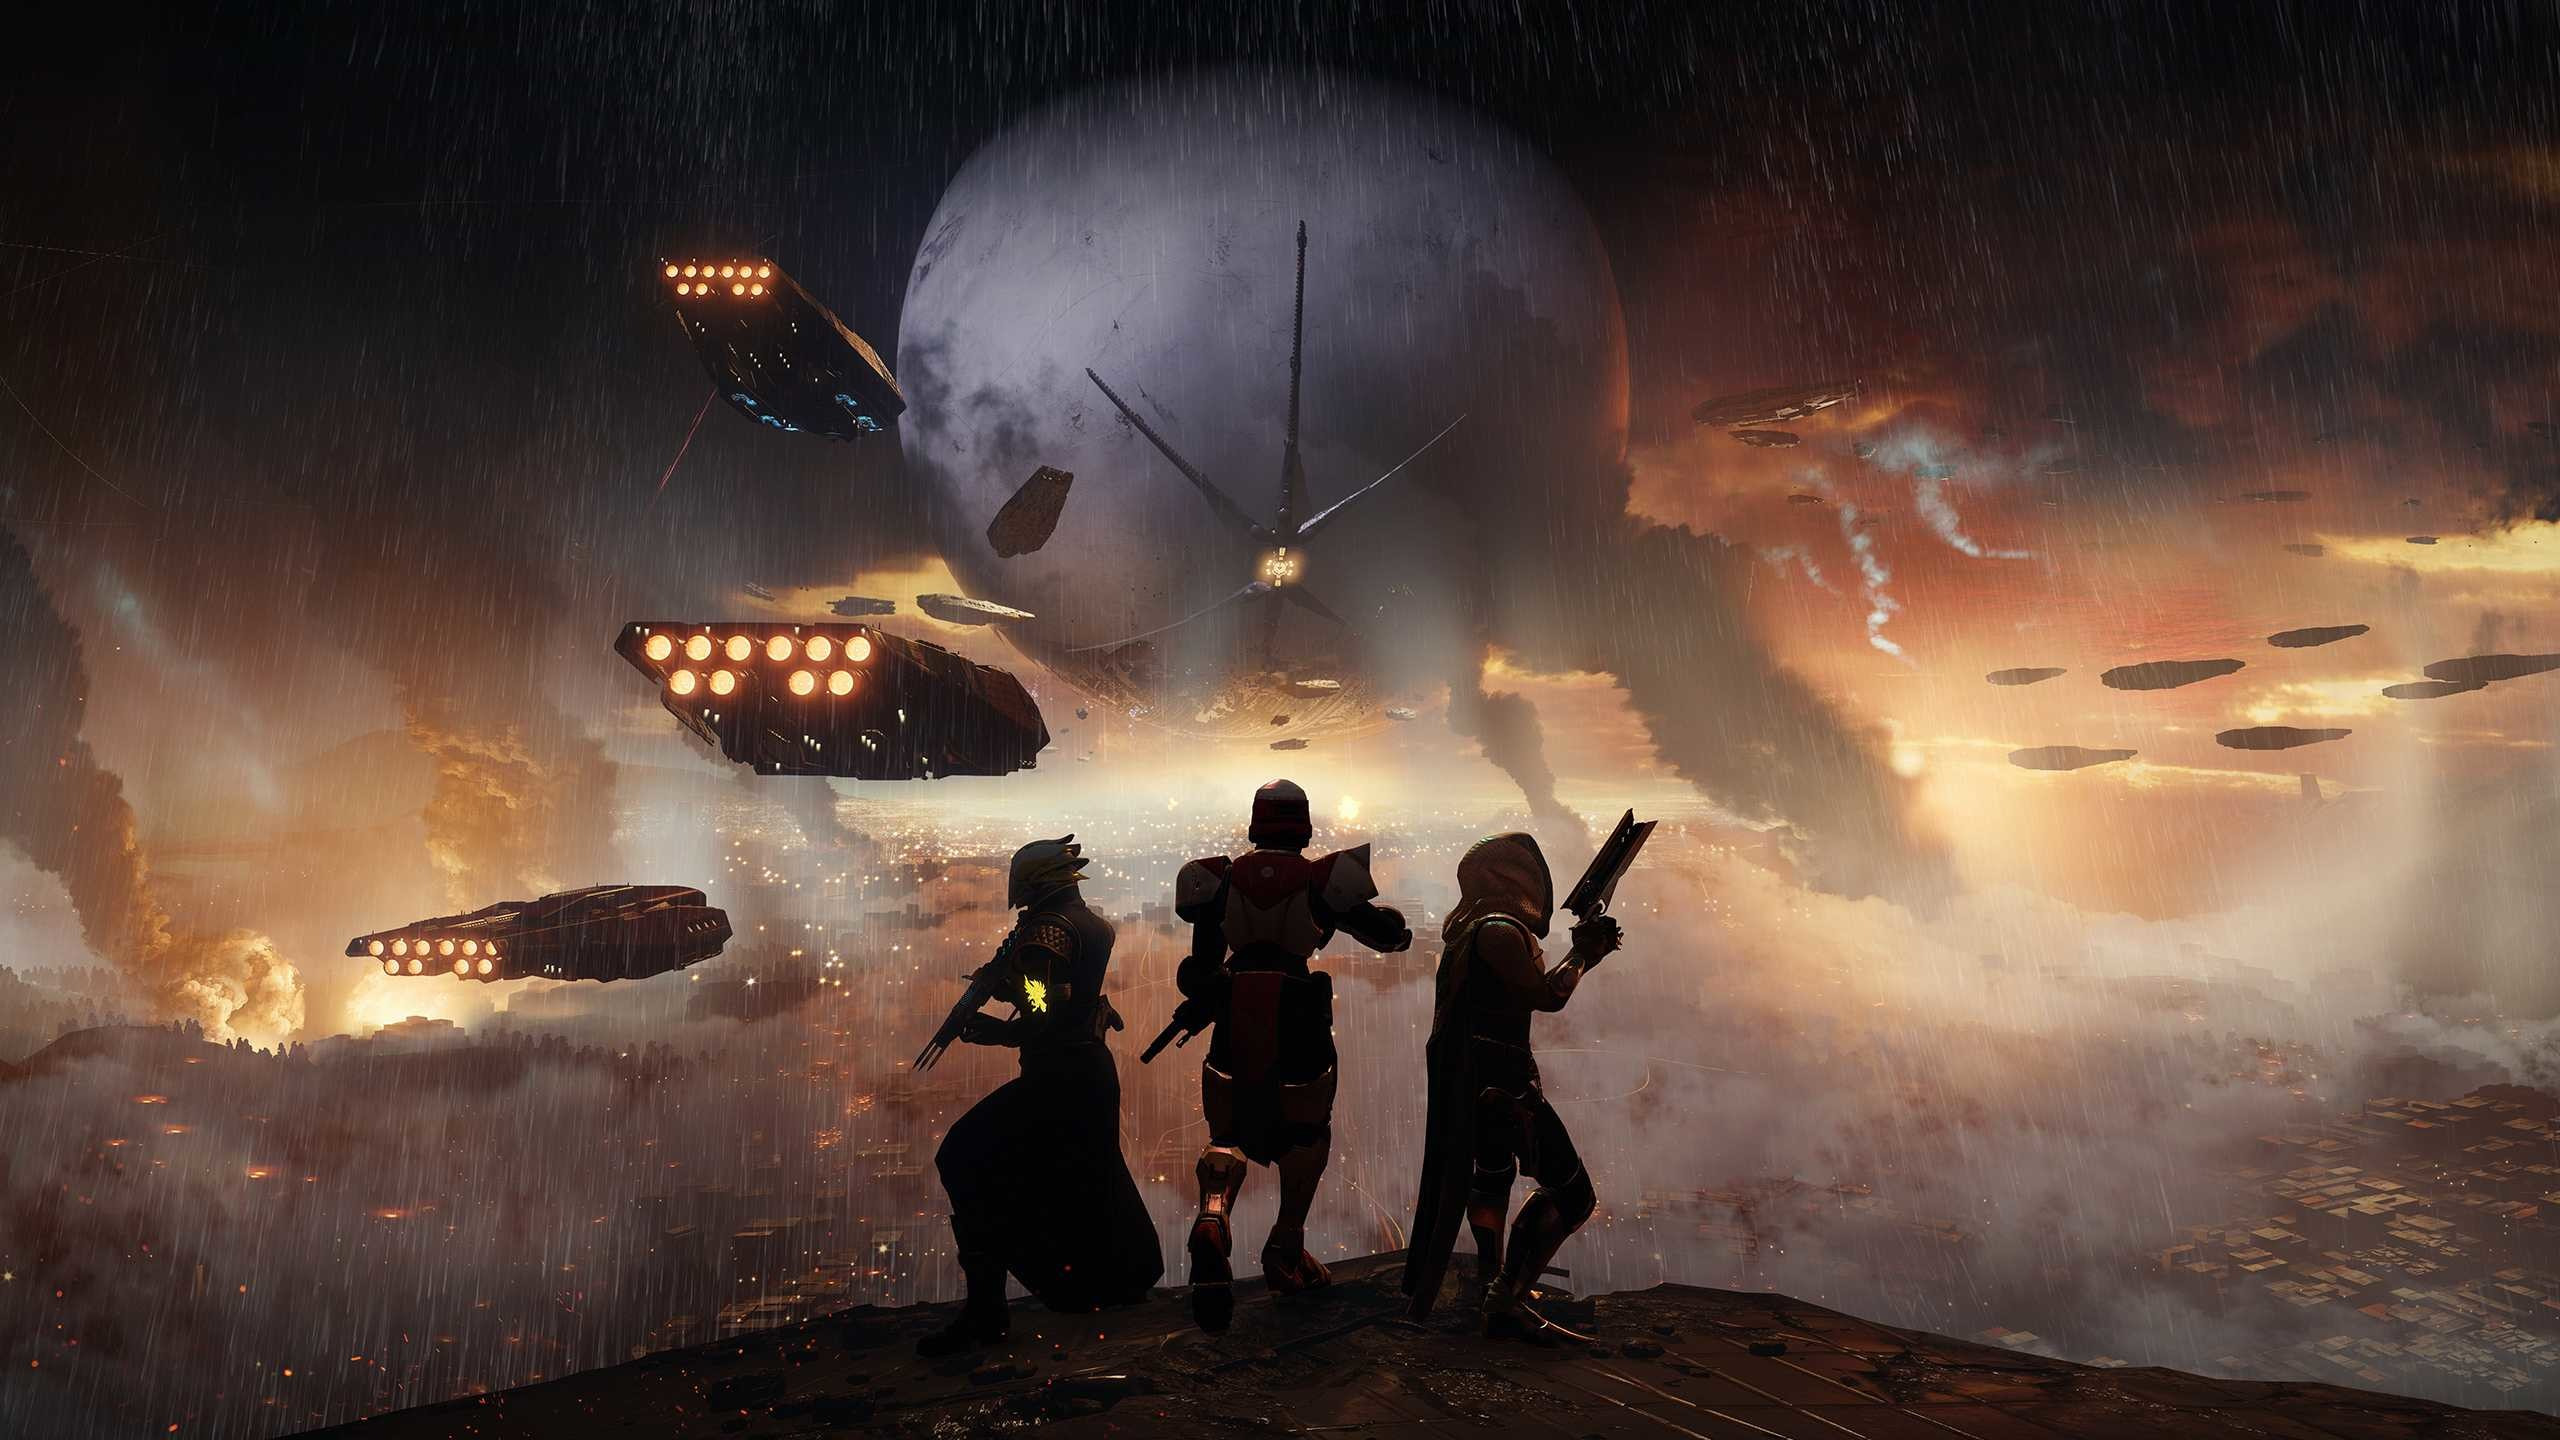 Res: 2560x1440, Destiny Hd Wallpaper Also Wallpapers Collection Pictures